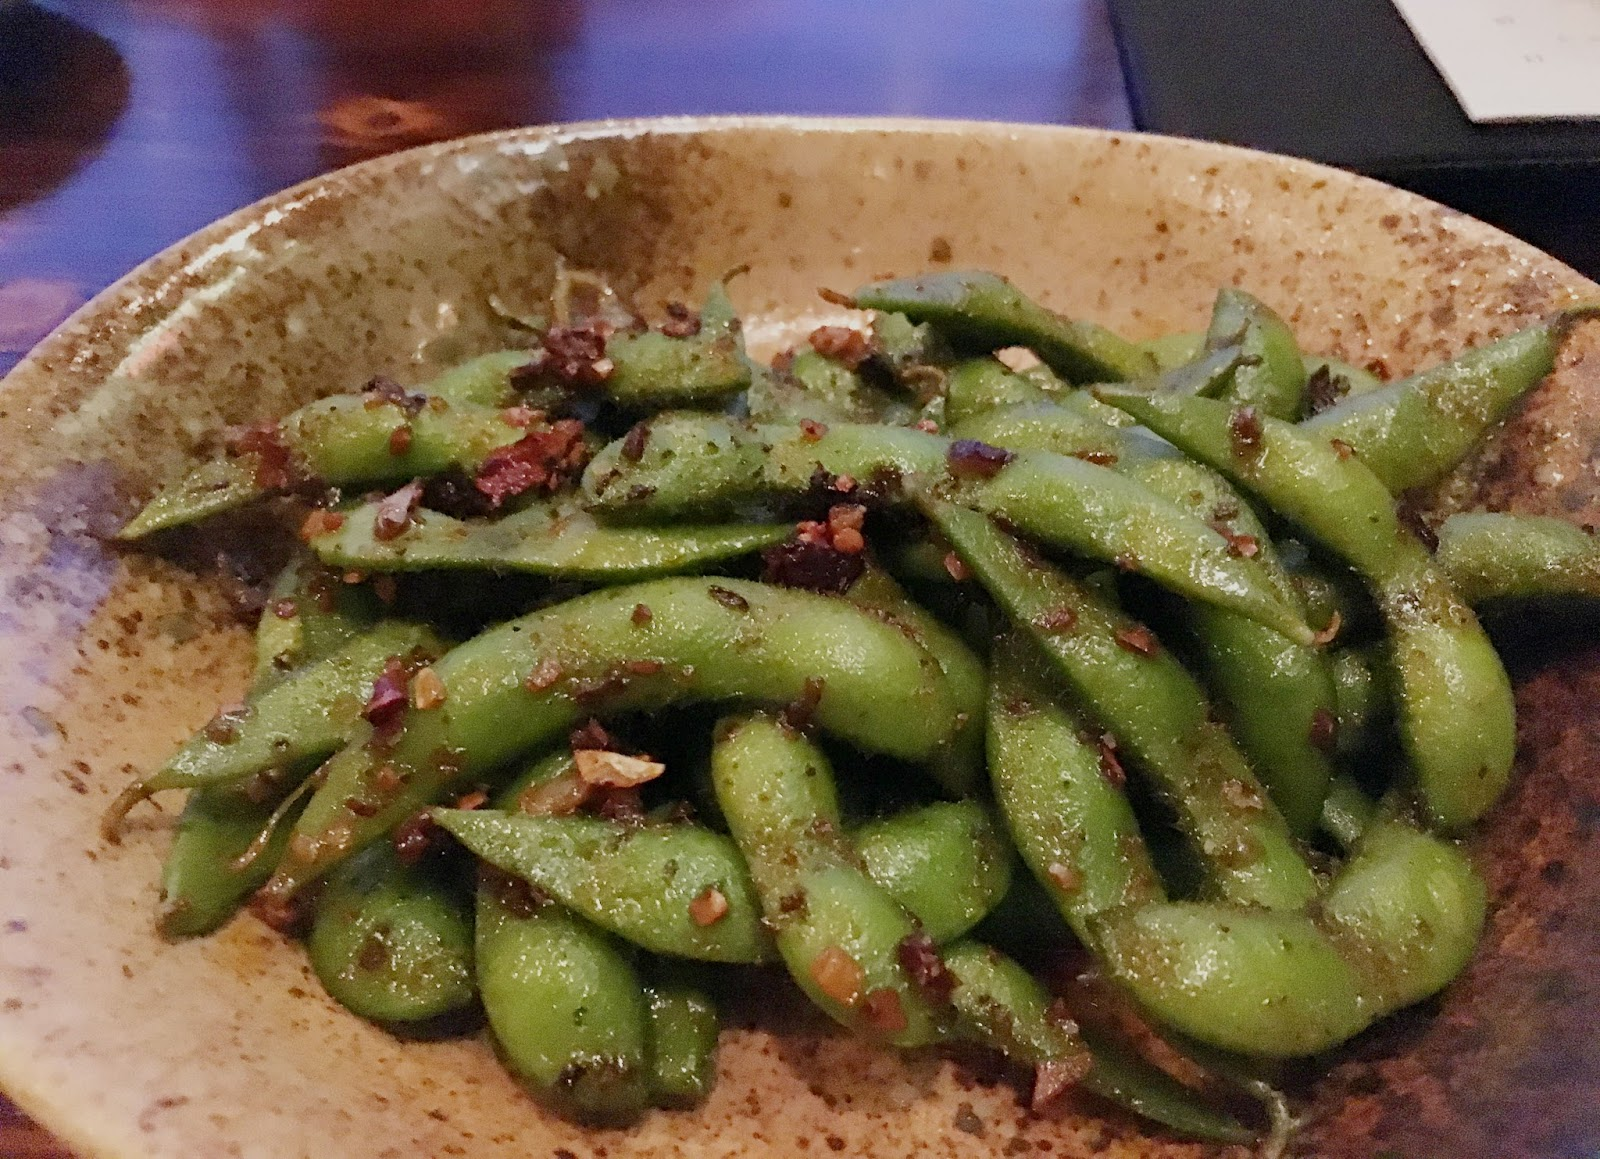 spicy edamame at ka sushi, a restaurant in Houston, Texas